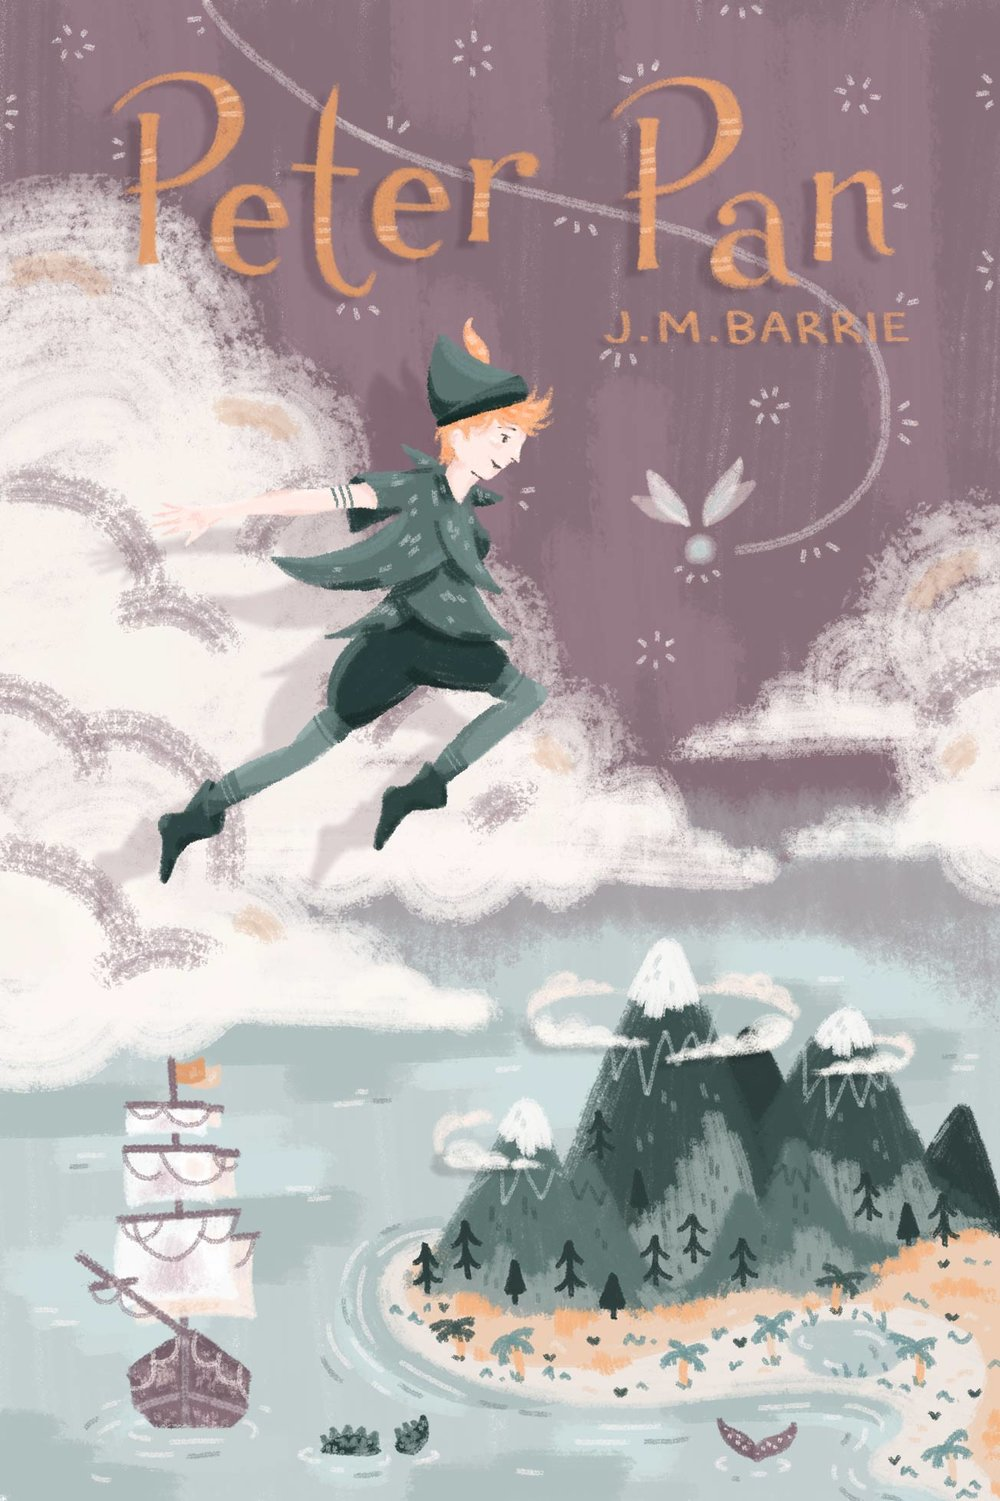 Illustrated Peter Pan book cover, Peter flying over Neverland.